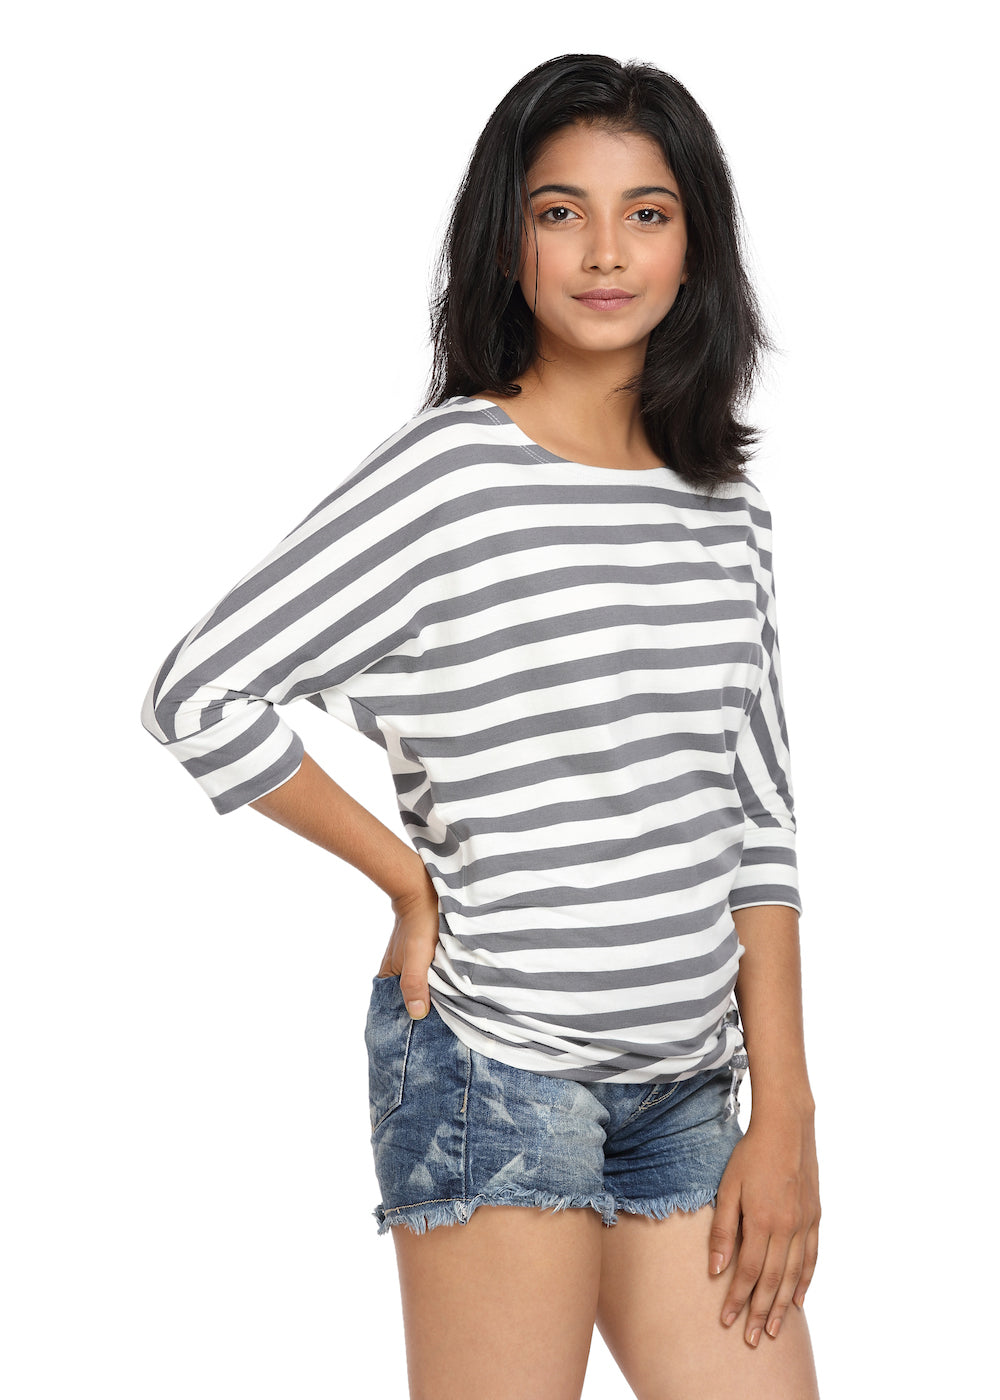 Striped Knit Top with a Knot Grey & White Boat Neck - GENZEE